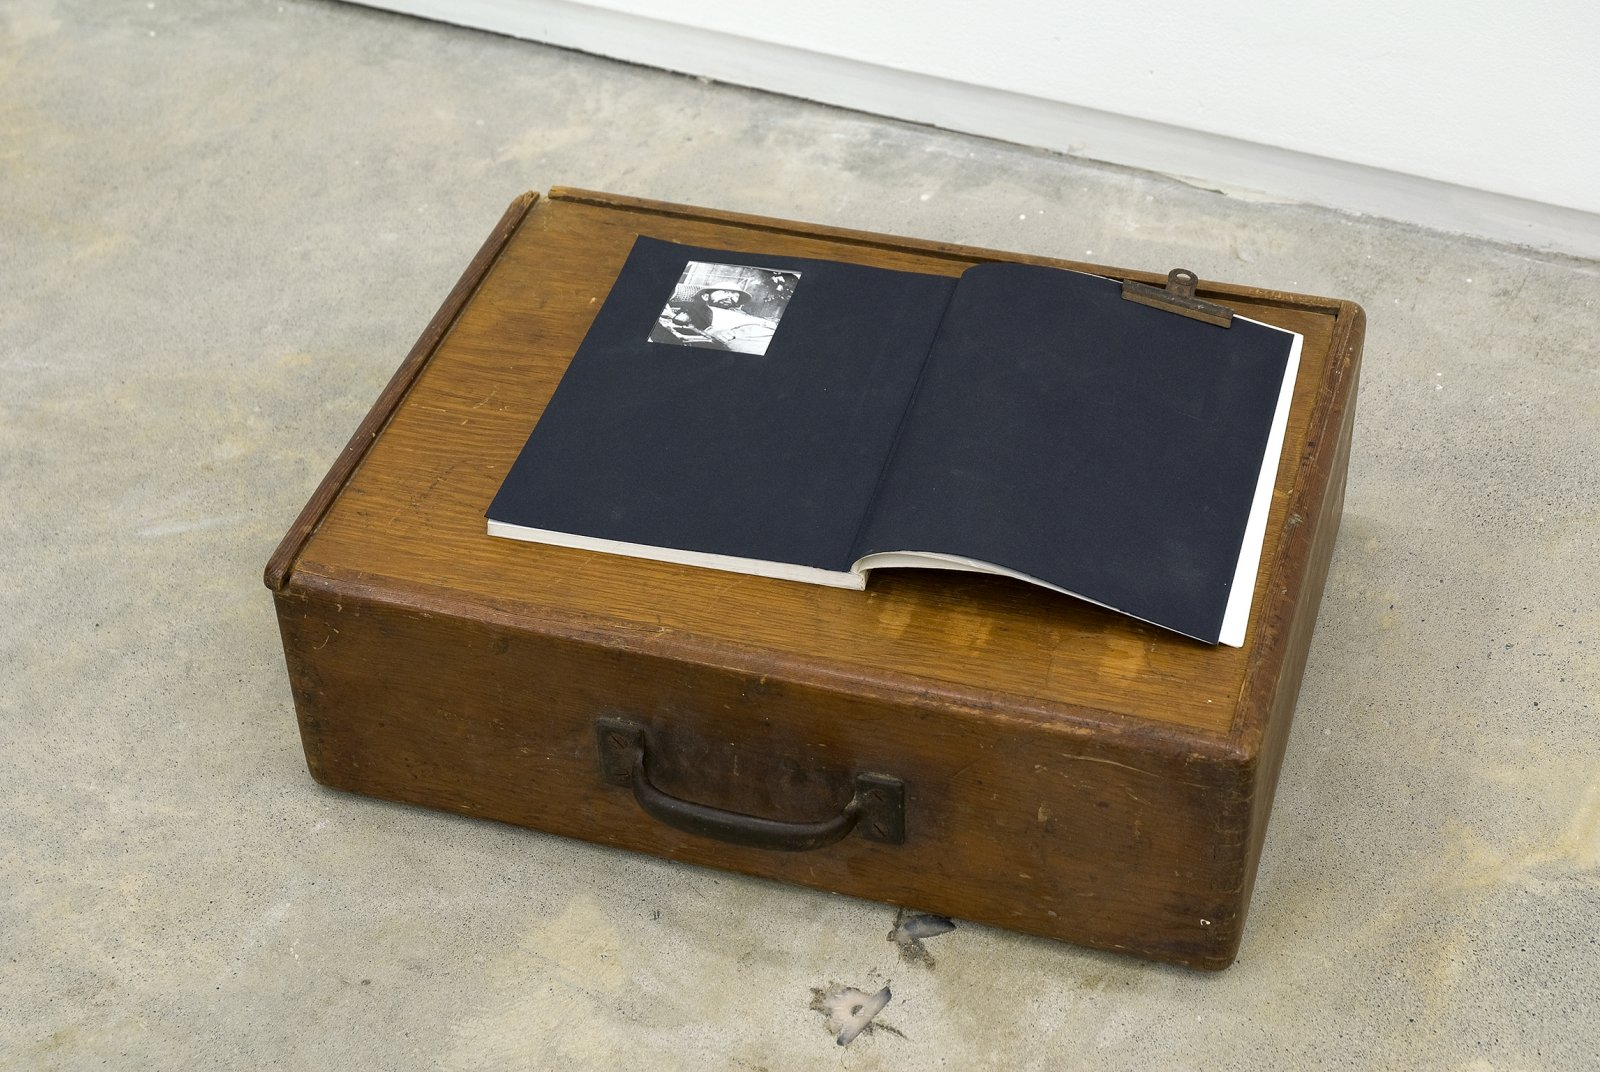 Gareth Moore, The brush has almost dropped from his hands from Uncertain Pilgrimage, 2006-2009, book, black paper, wooden case, 6 x 20 x 6  in. (15 x 51 x 16 cm) by Gareth Moore